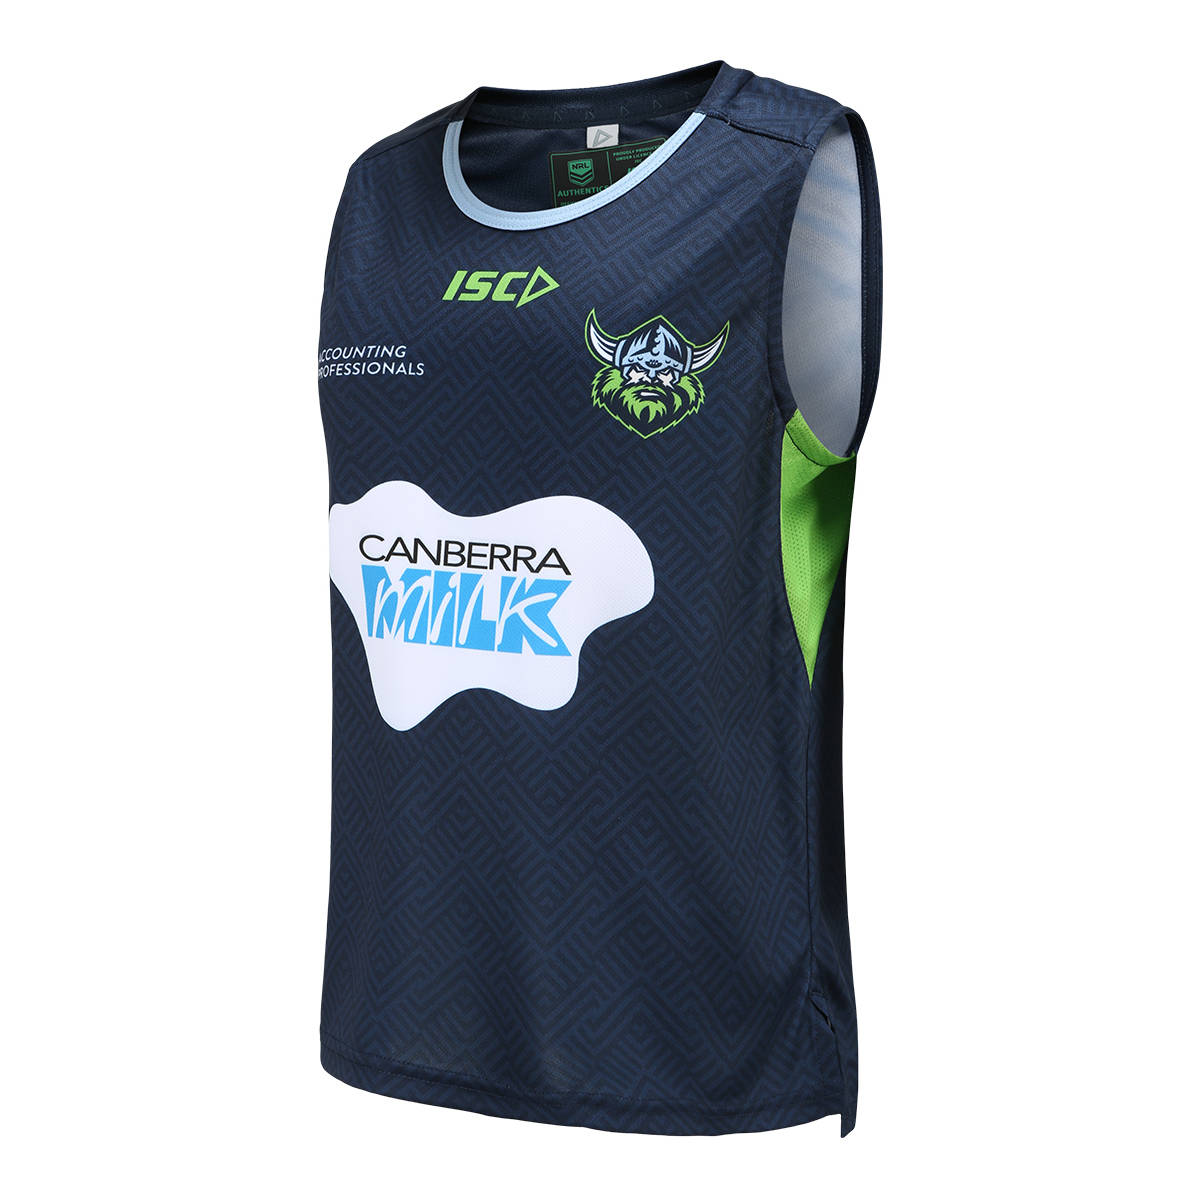 2021 Kids Training Singlet Navy1